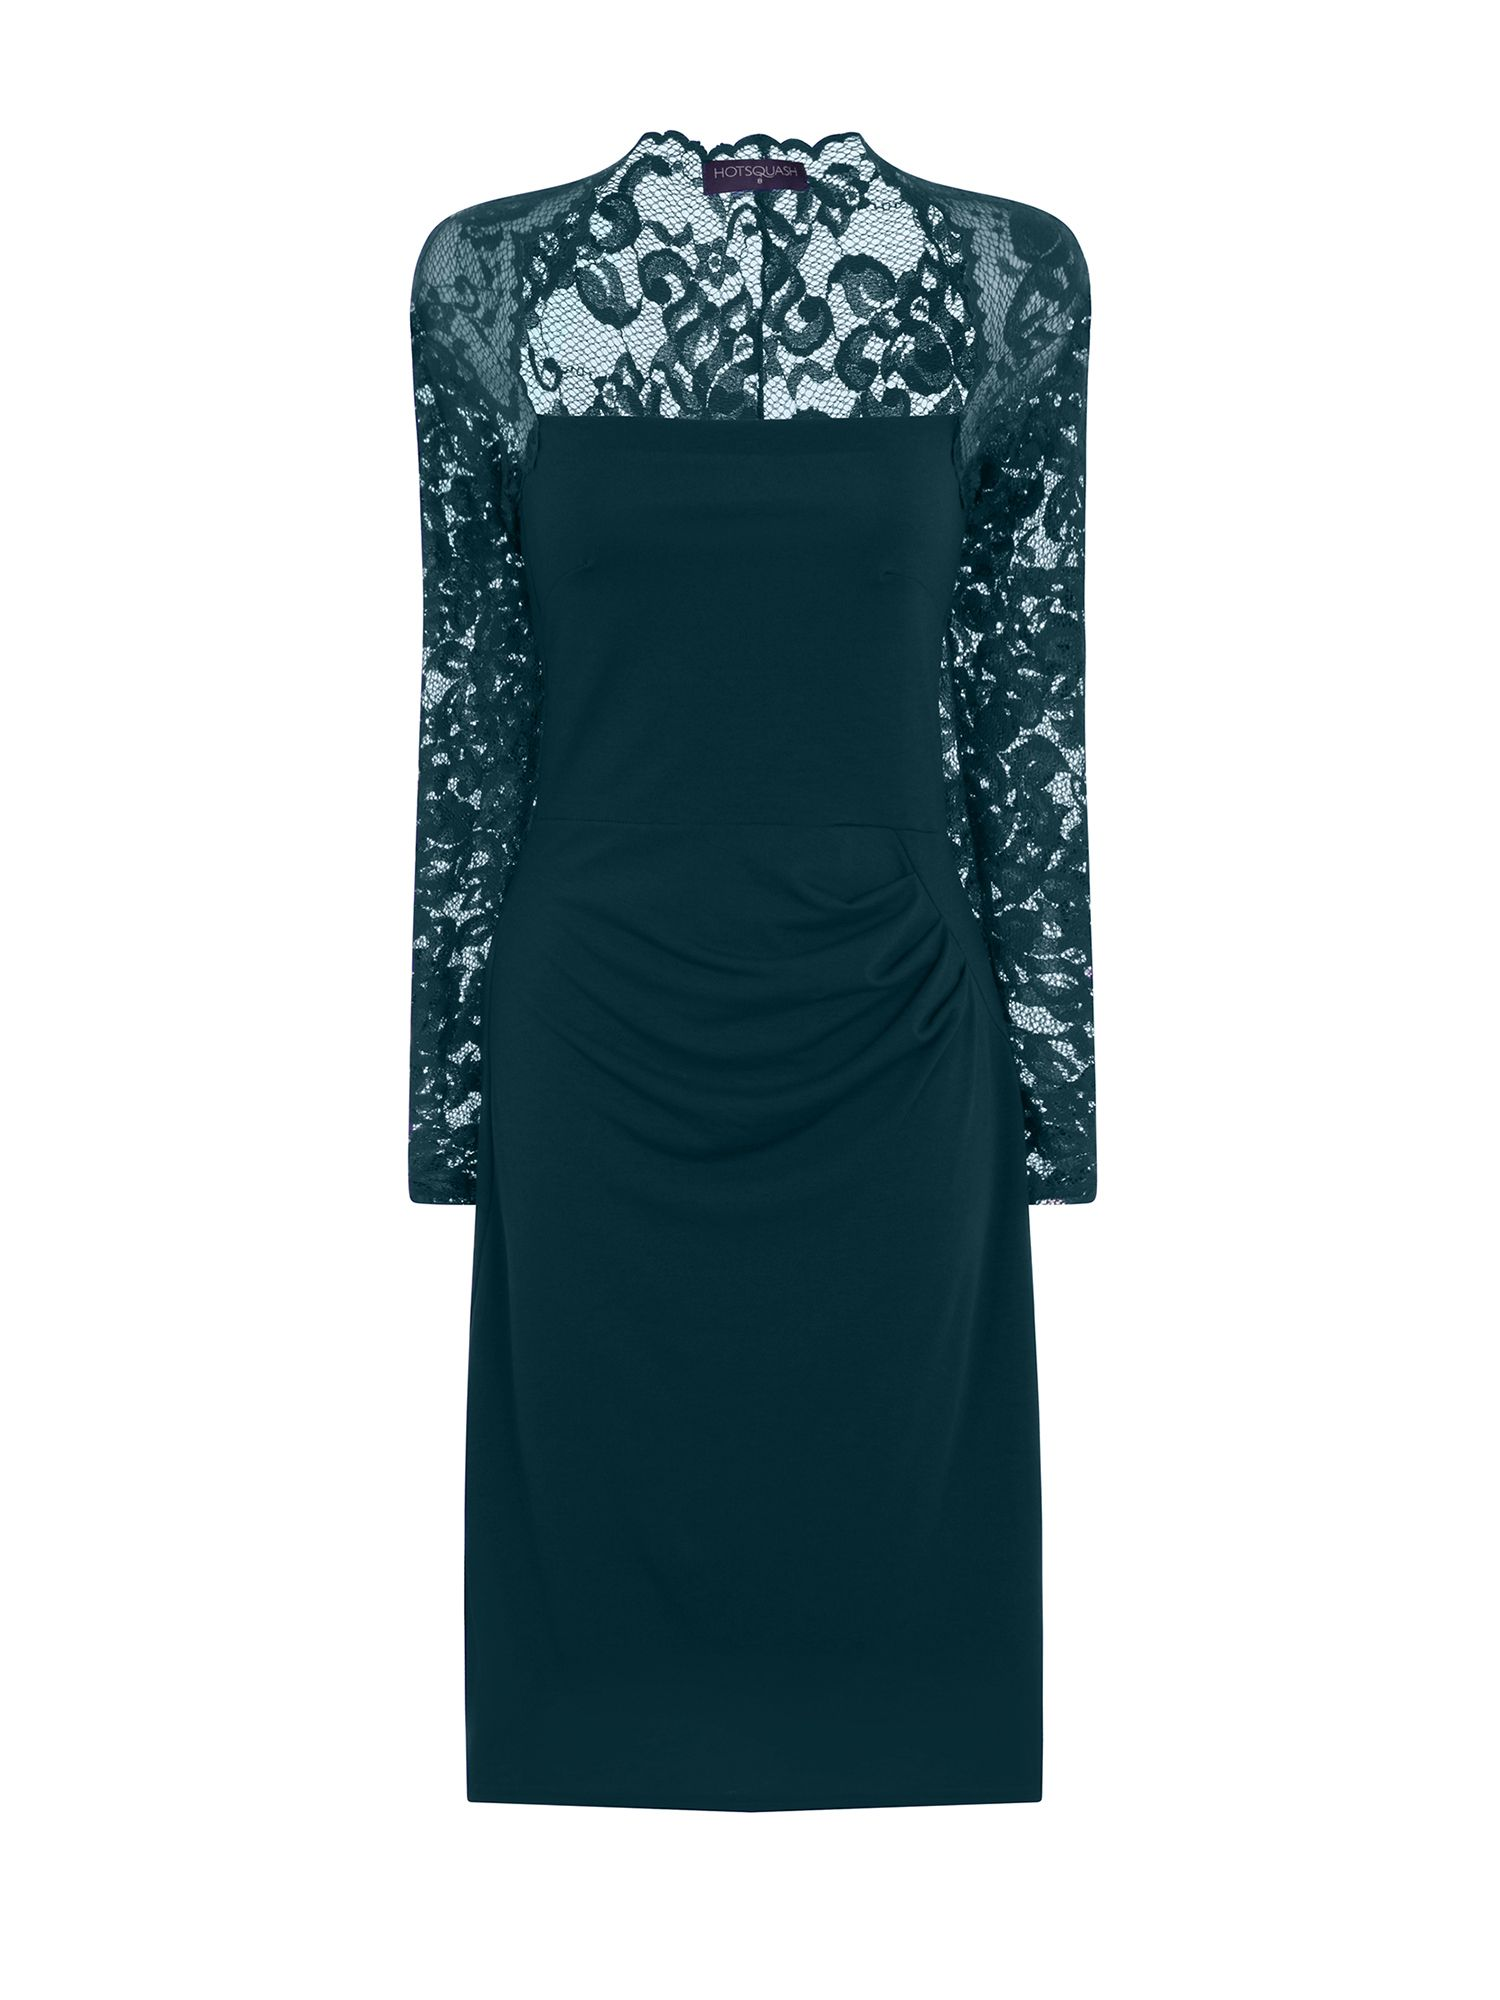 HotSquash Lace Sleeved Dress In Clever Fabric, Emerald